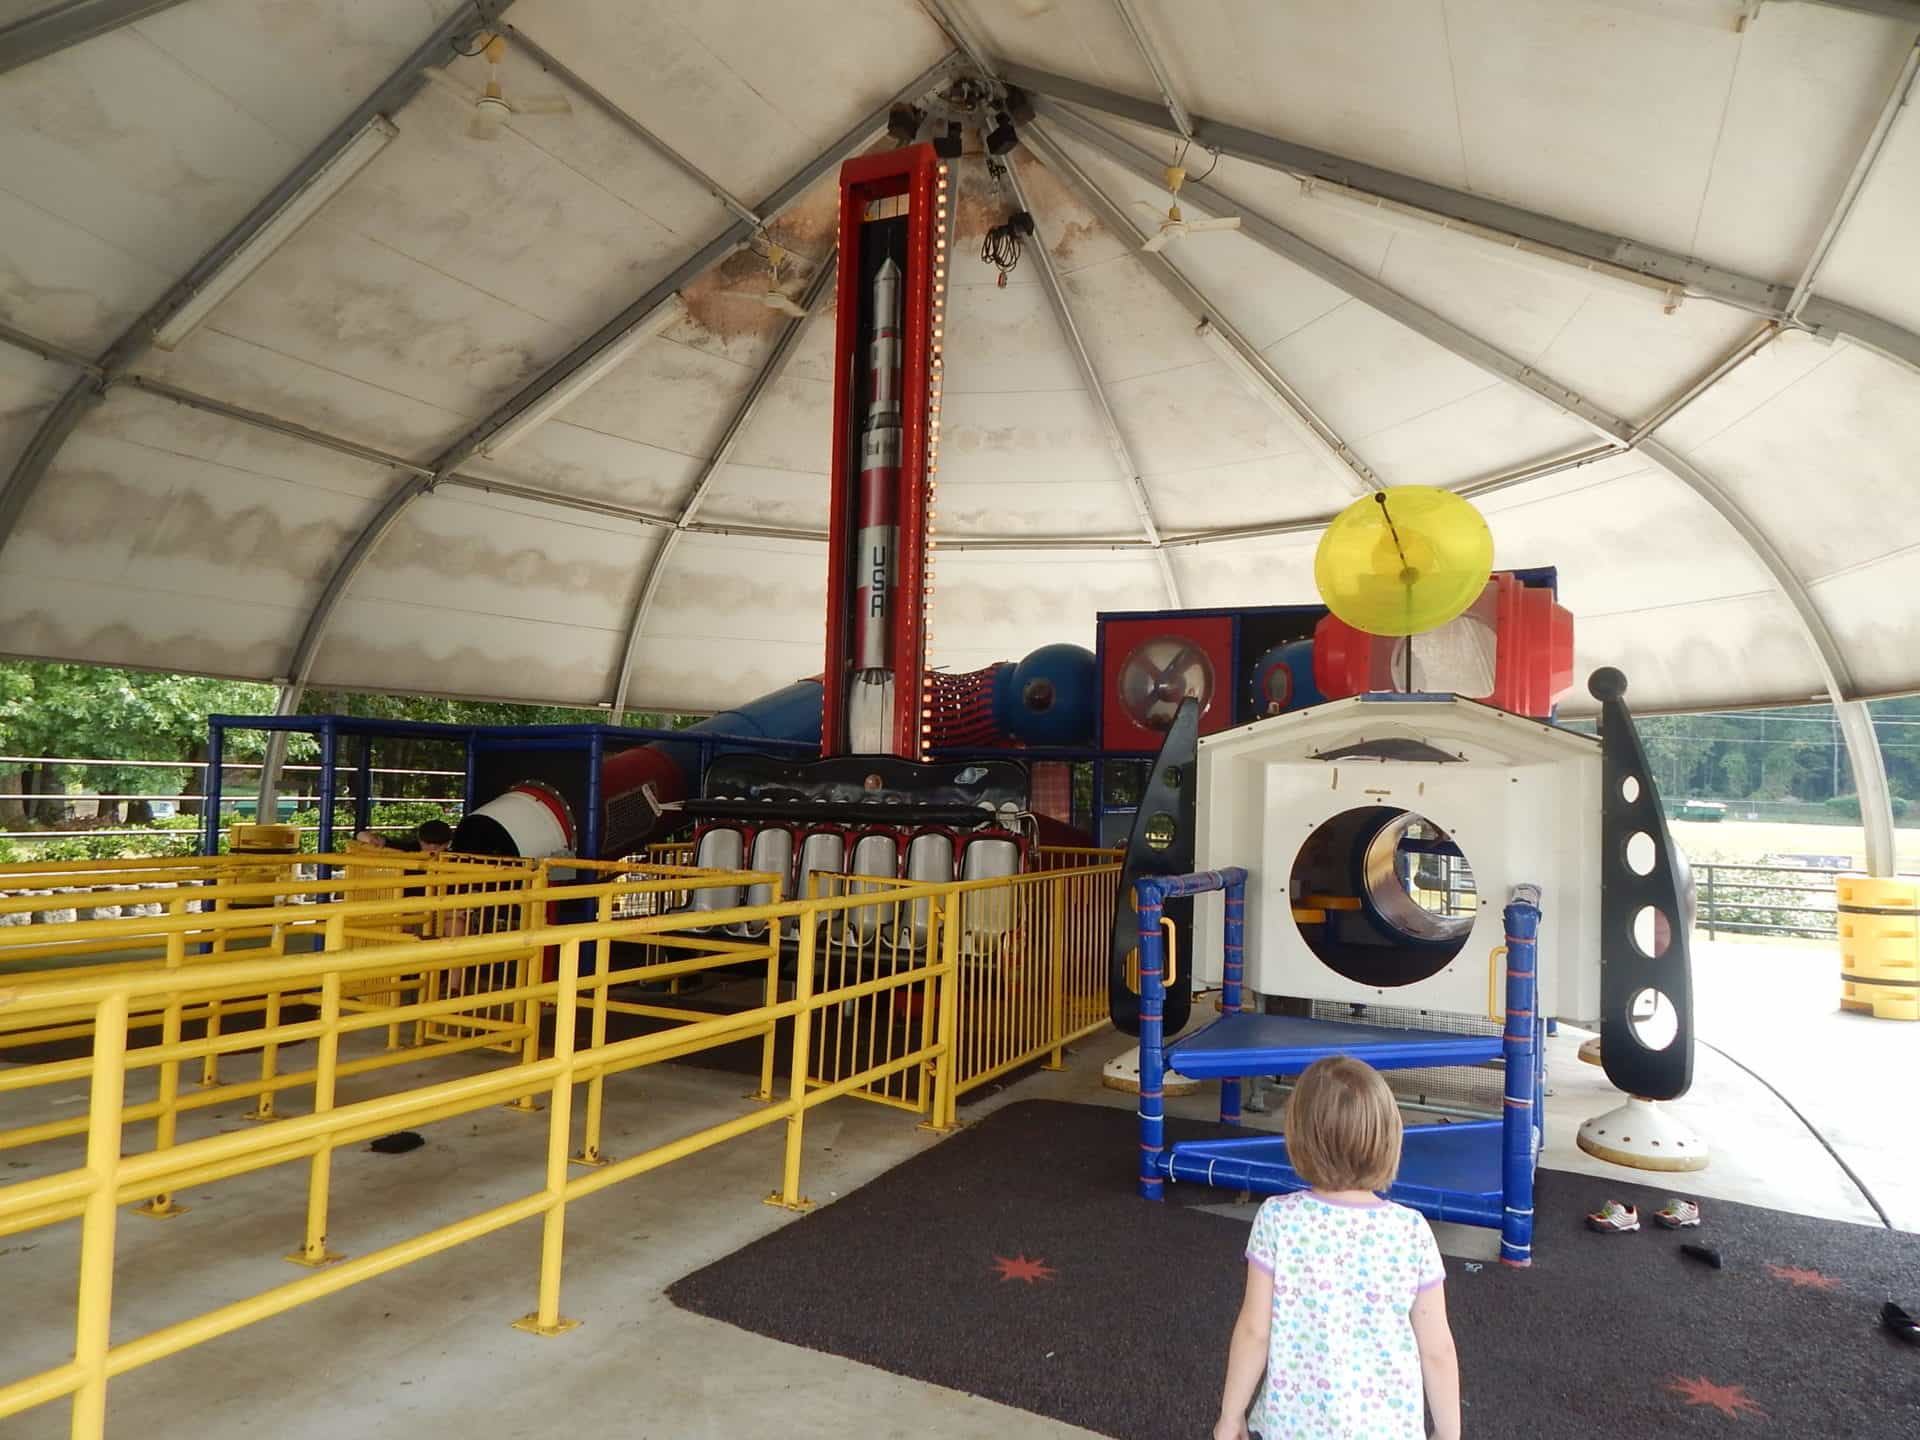 US Space and Rocket Center - Kids Cosmos Outdoor Play